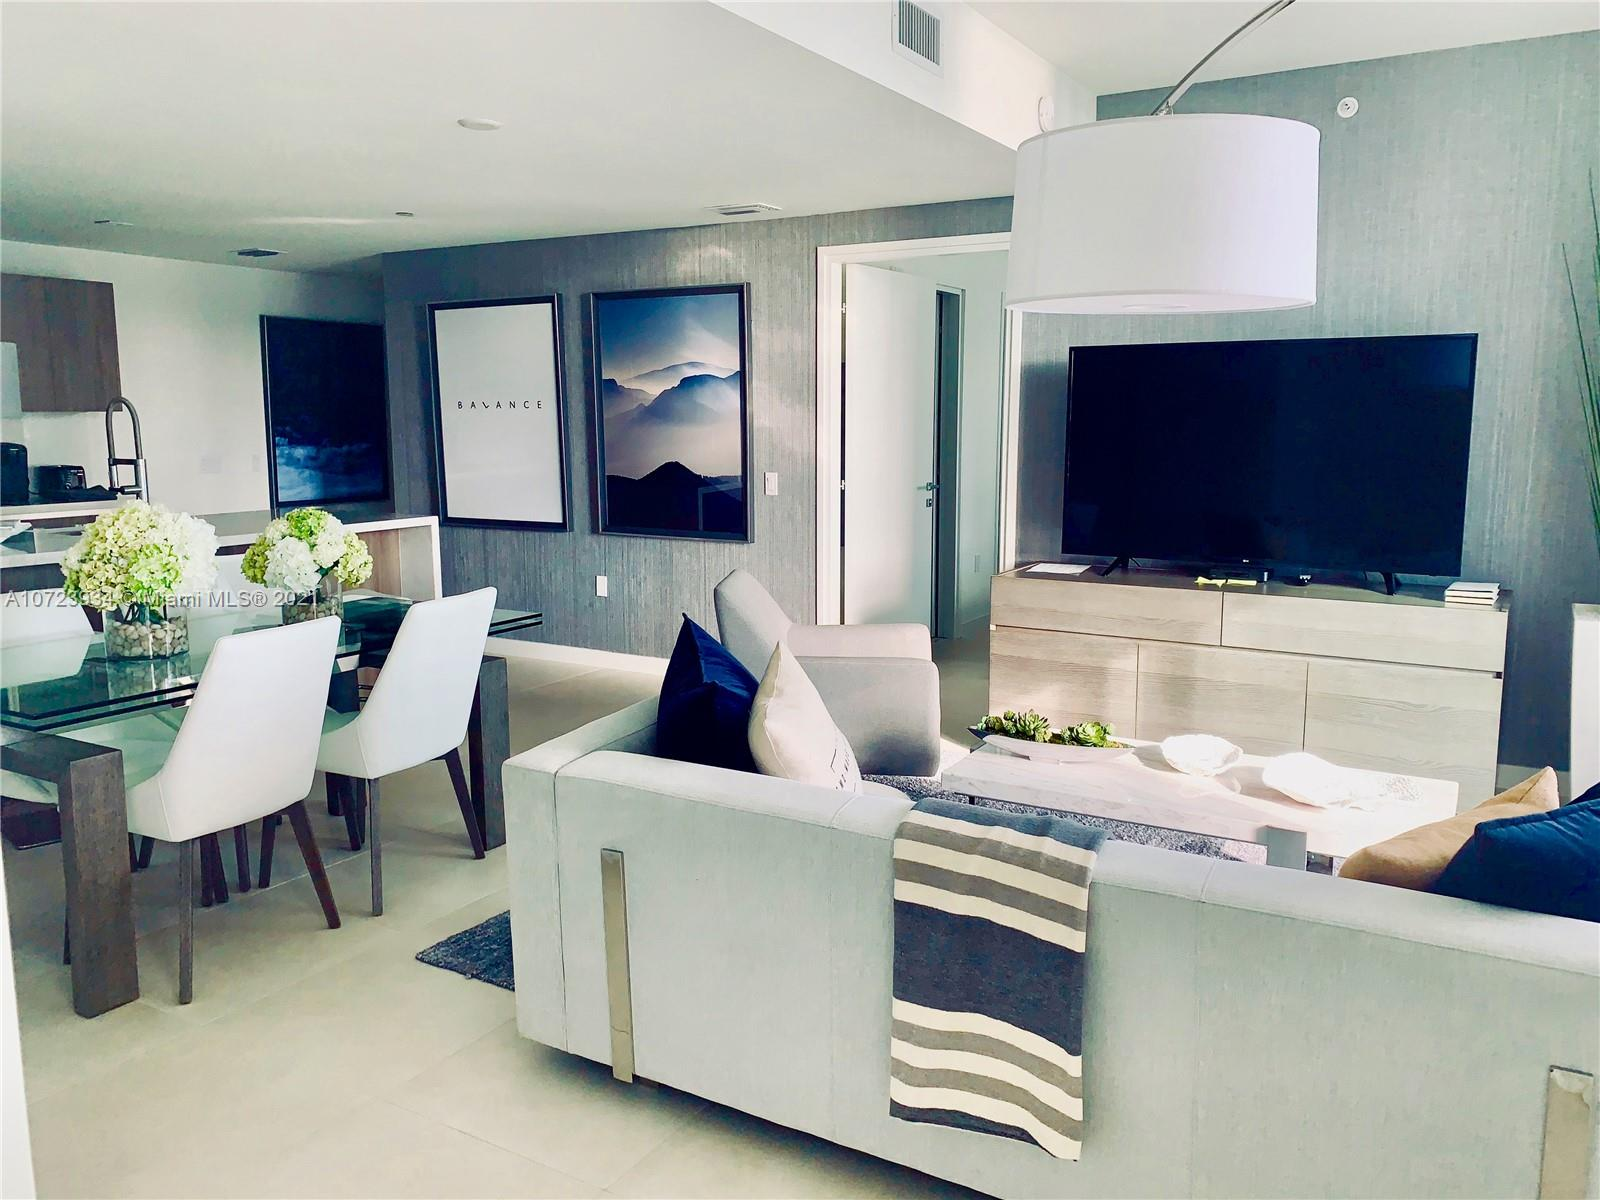 Magnificent newly-built 7th floor EAST facing ocean-view condo, 1 bedroom-1 bath, living-dining + den with Murphy bed, balcony, turn-key completely furnished with Gale Signature package by Now by Steven G, located in sought-after Ft. Lauderdale North Beach Village, one easy block from the beach! Marble flooring throughout, marble bathroom, high-end kitchen appliances with Italian cabinetry, washer/dryer, basic cable/internet/local phone. Current beach service and soon-to-open signature restaurant as part of the Gale landmark restoration project. Offering short-term lease (minimum one month) , up to 6-12 months.